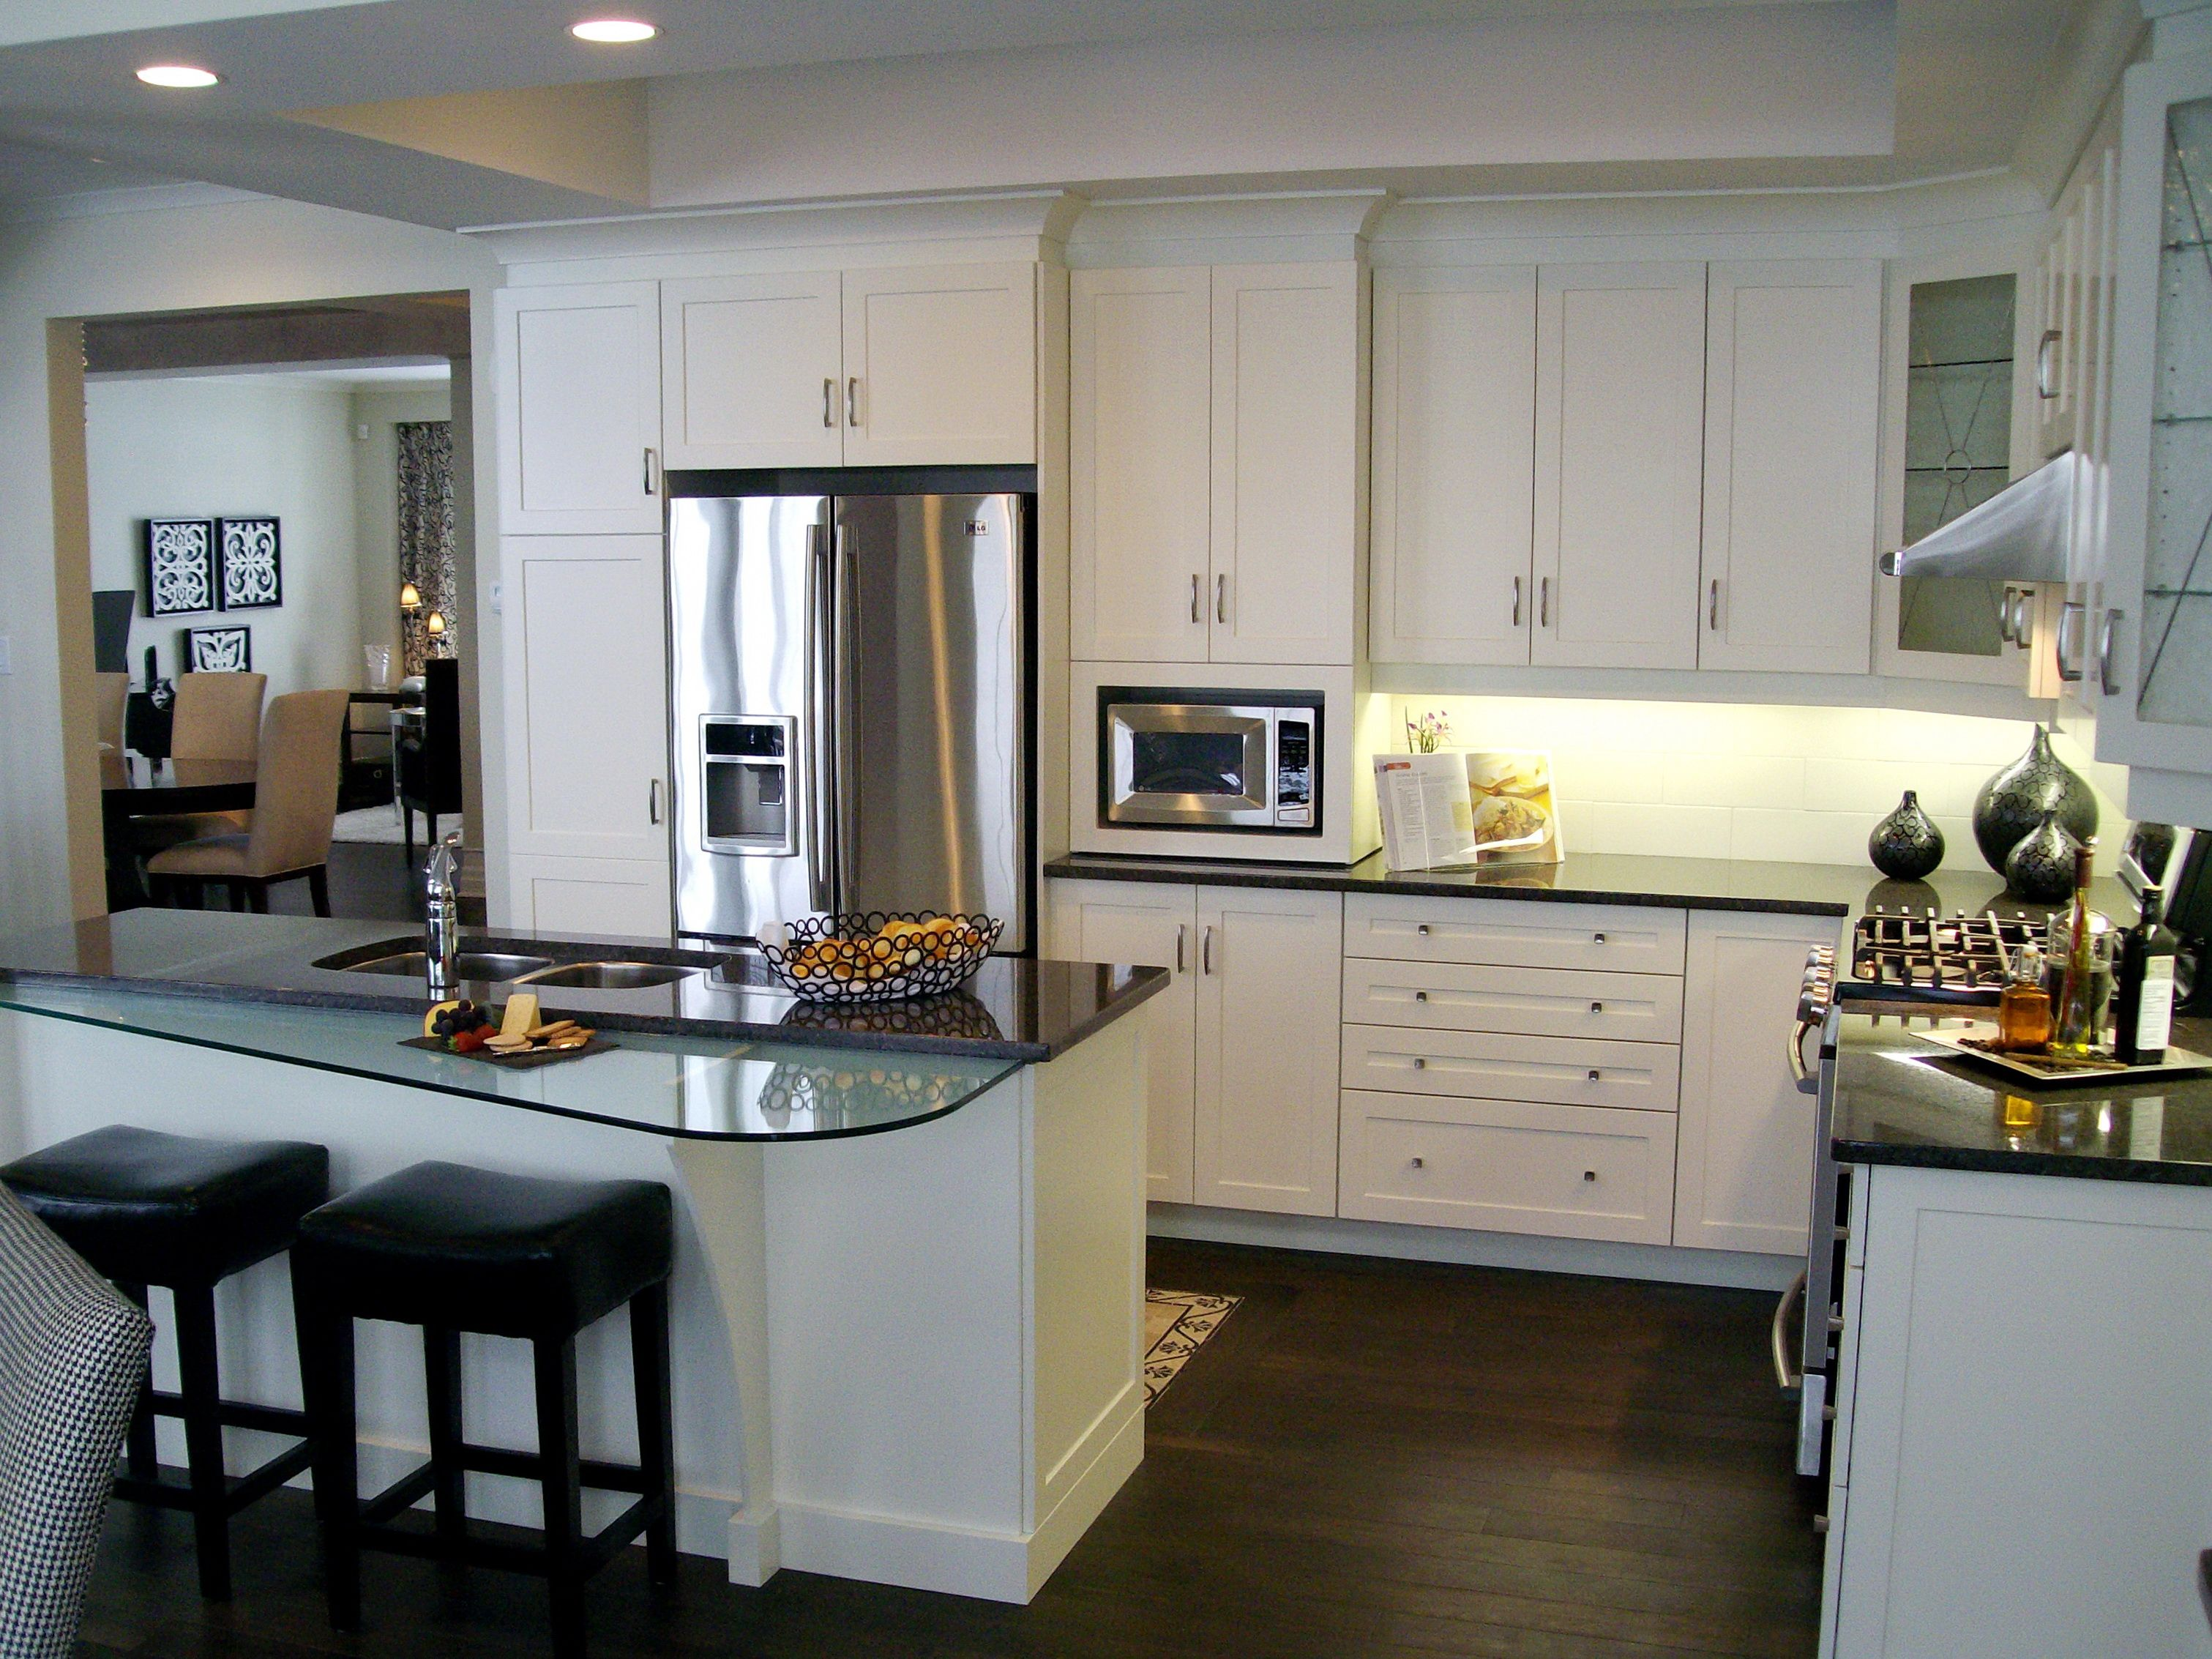 White Lacquer Shaker Cabinets With Antique Brown Granite Glass Island Top Shaker Cabinets Cabinet Brown Granite